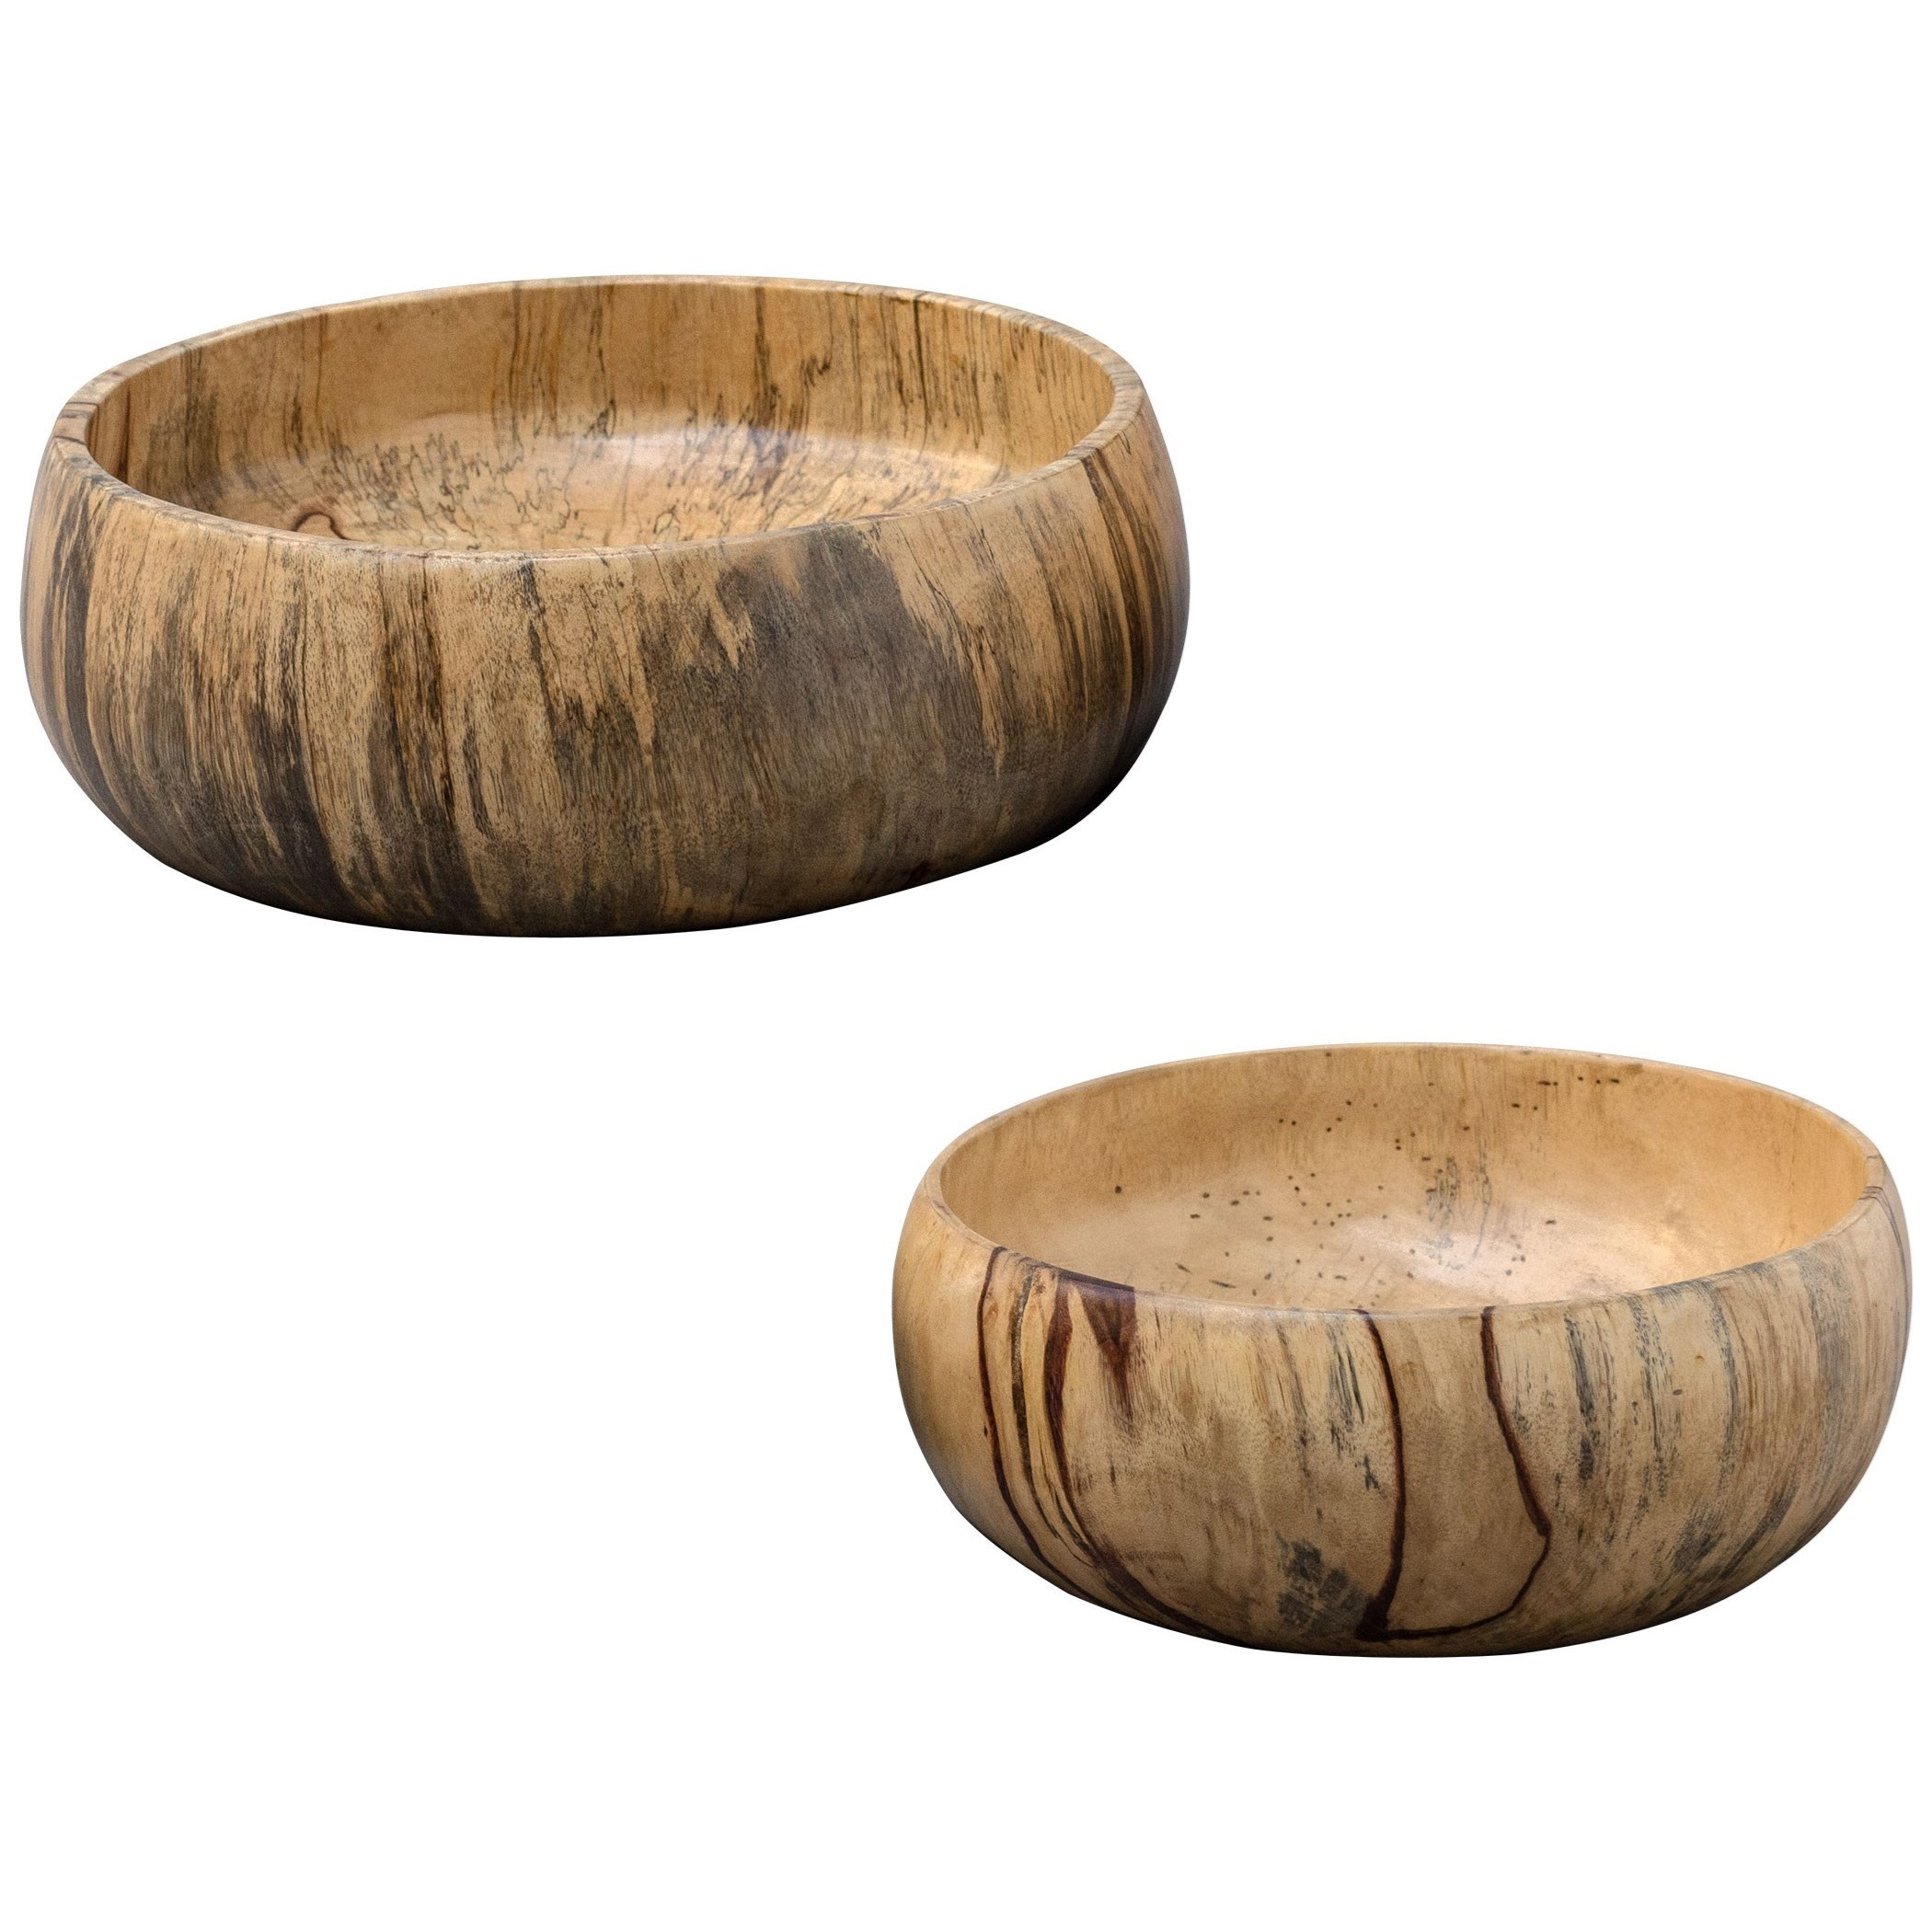 Accessories Tamarind Wood Bowls, S/2 by Uttermost at Mueller Furniture